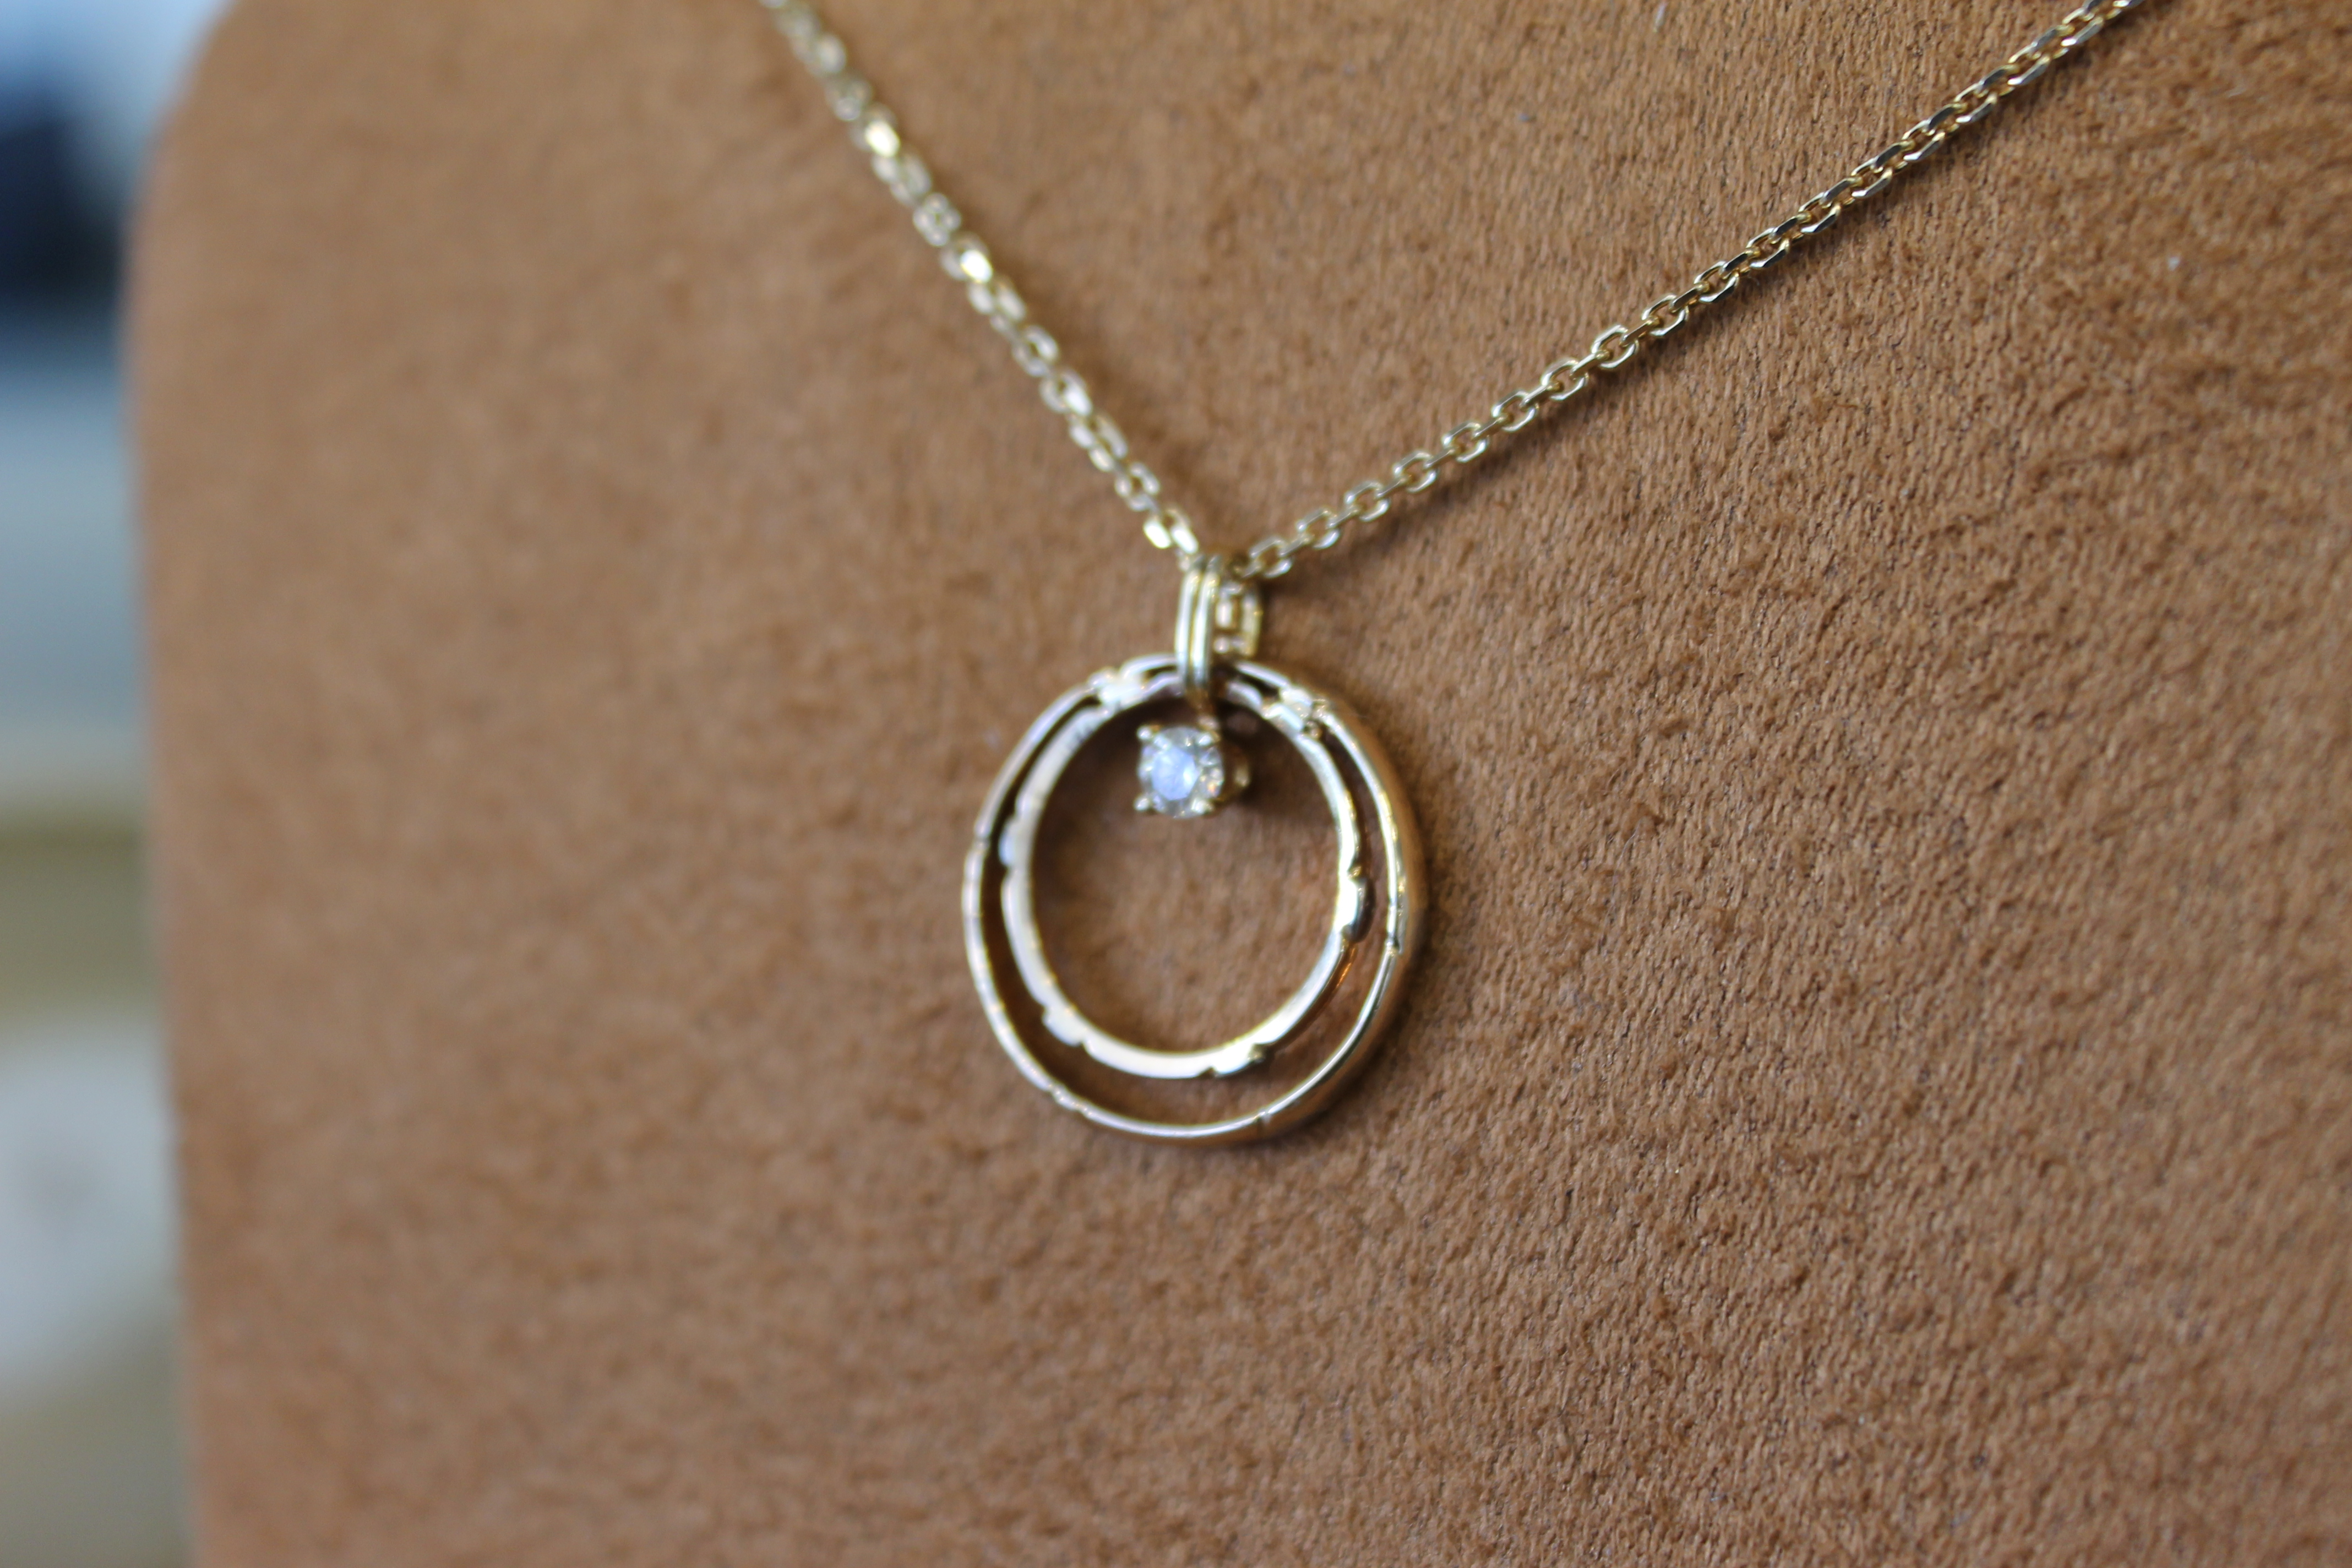 the most beautiful wedding rings wedding ring on necklace - Wedding Ring Necklace